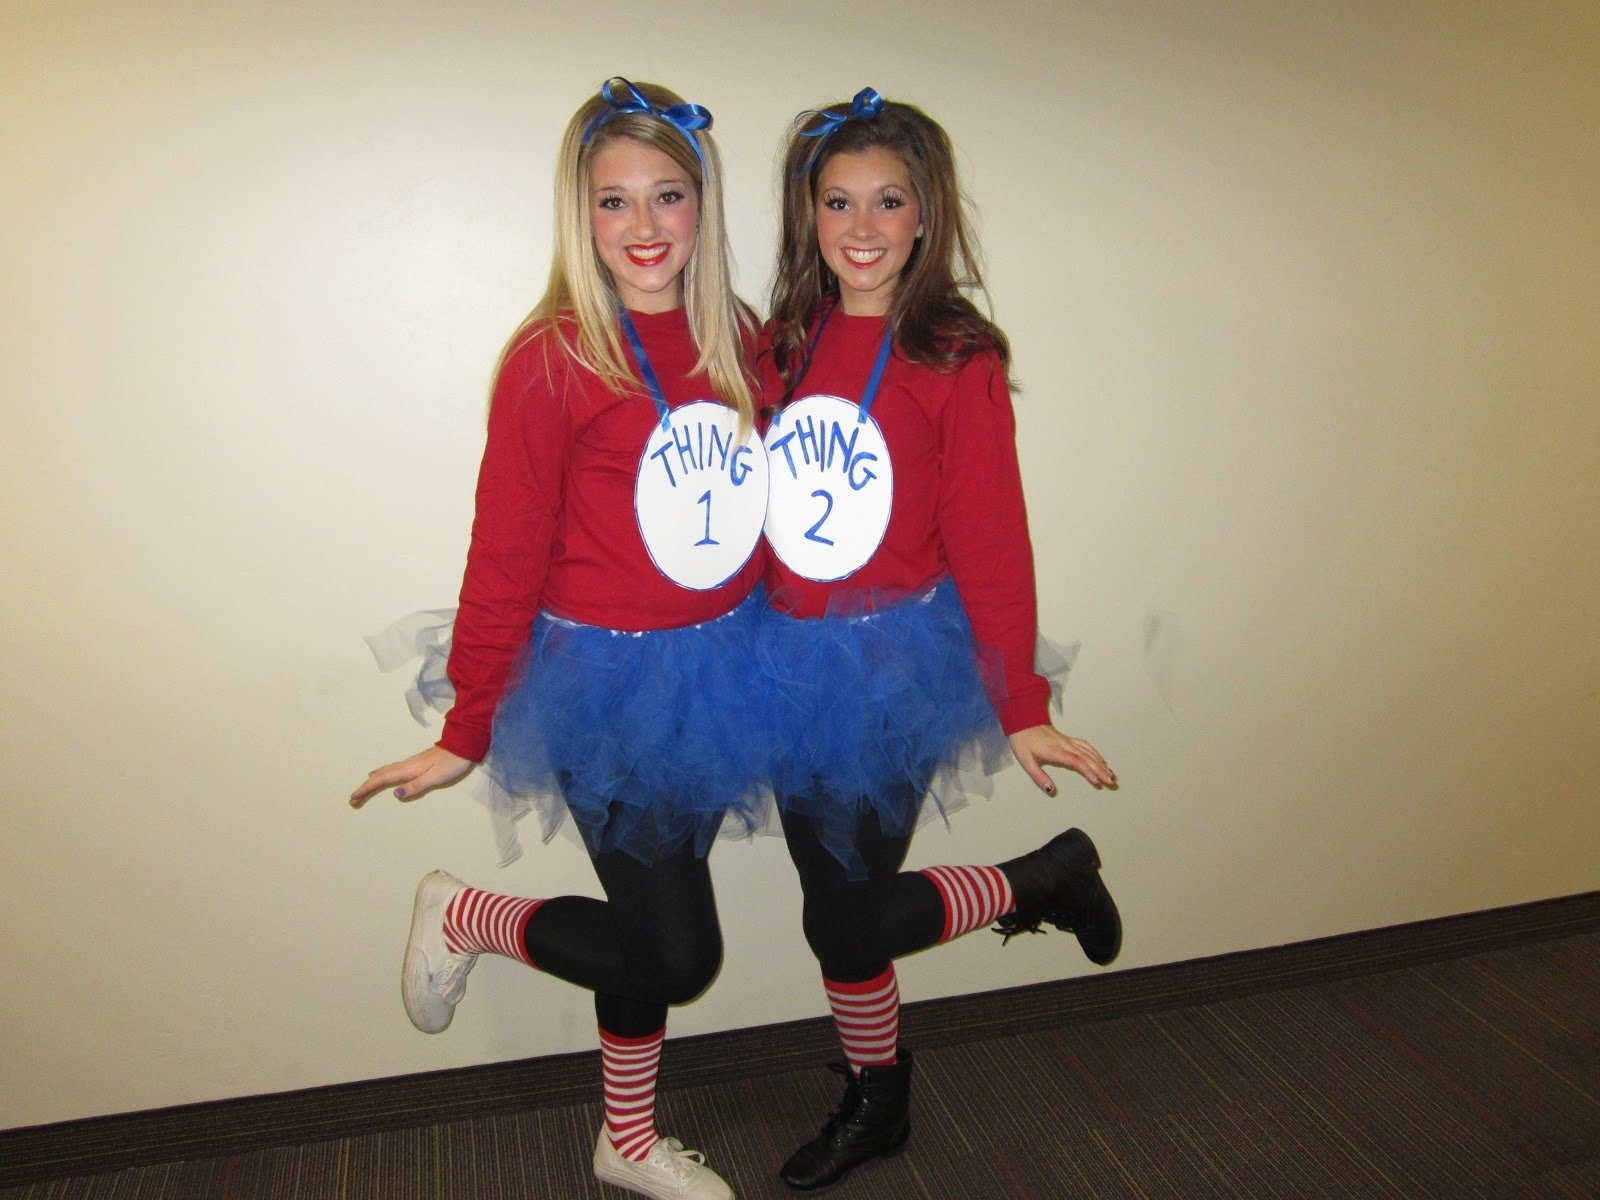 10 Unique Thing 1 And Thing 2 Costume Ideas halloween 2014 costumes for two 2021